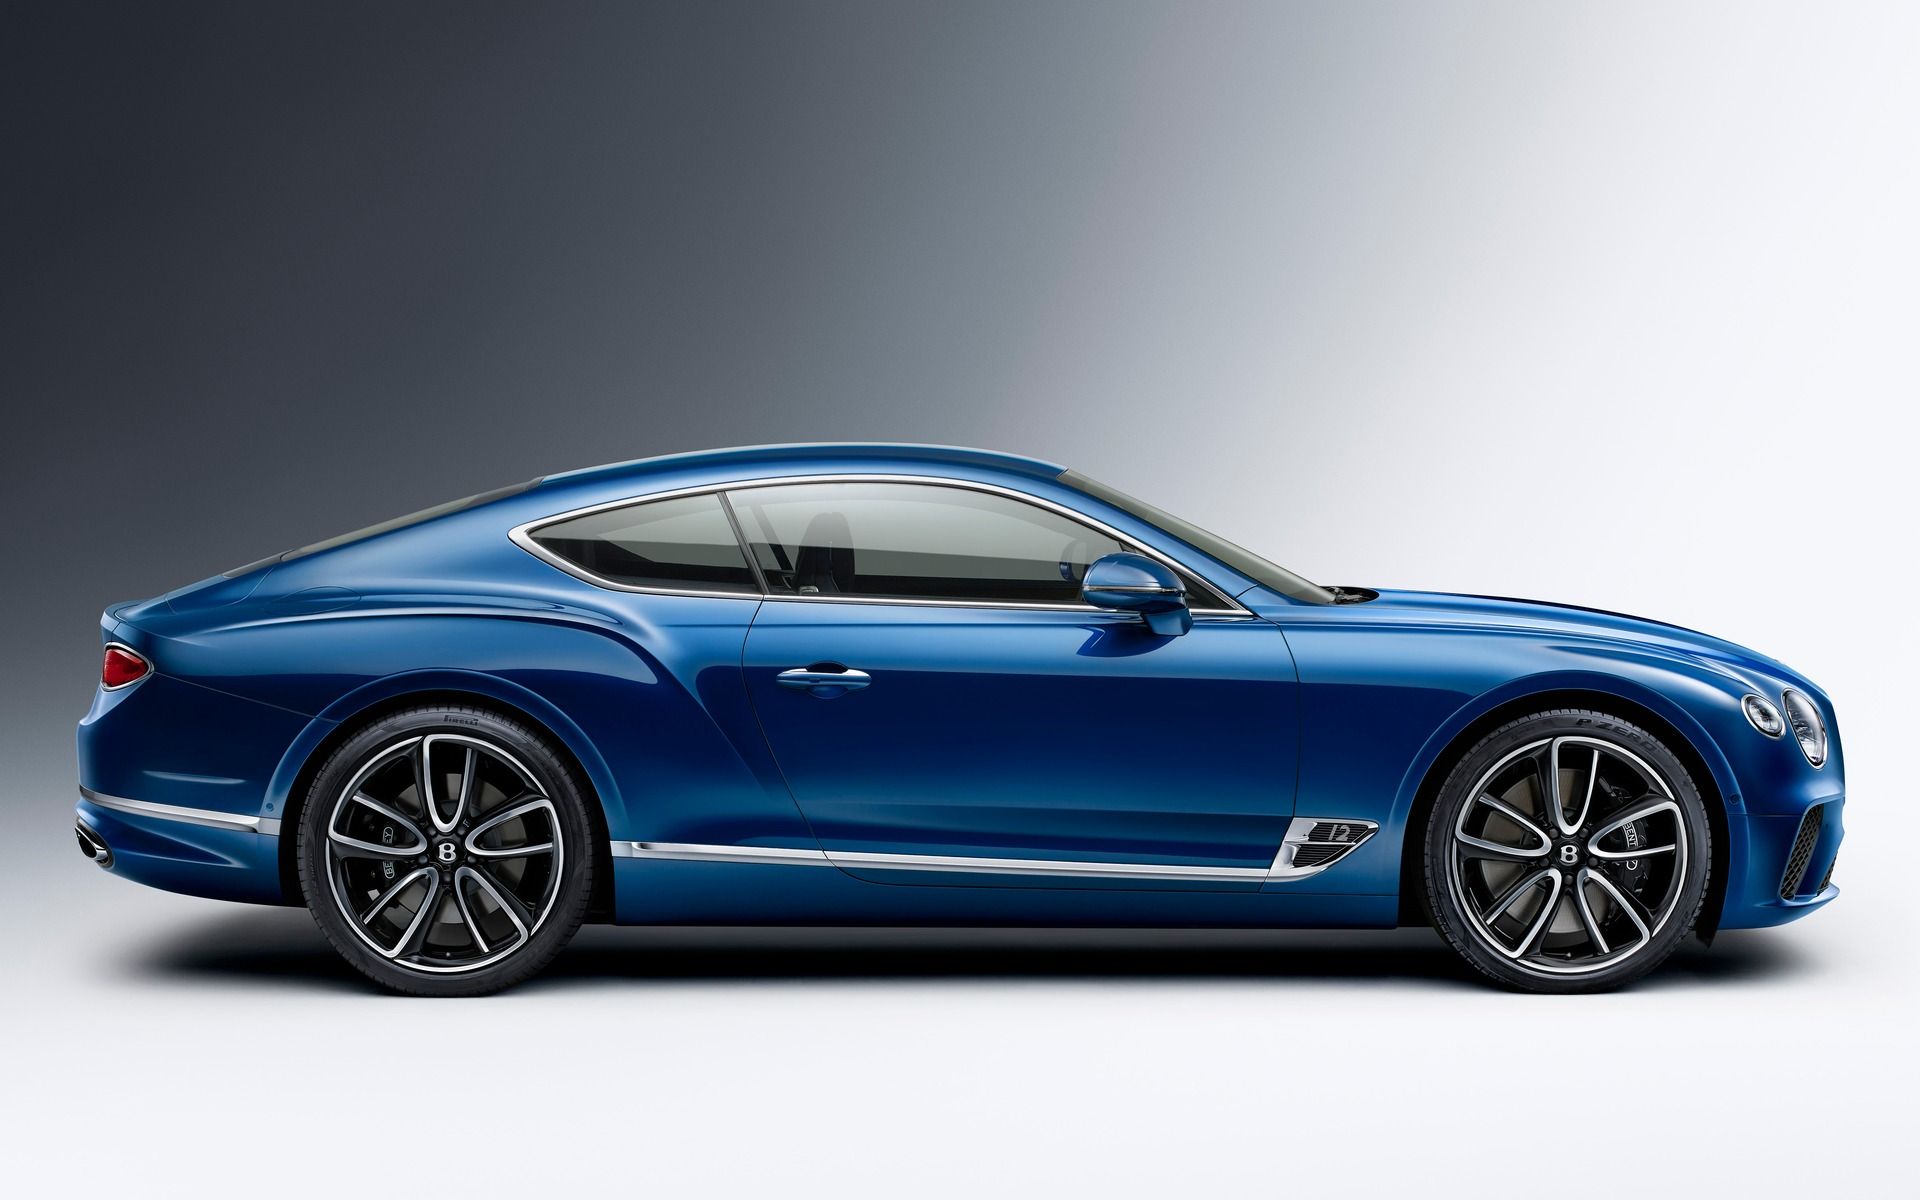 2018 bentley continental gt revealed 29 36. Black Bedroom Furniture Sets. Home Design Ideas